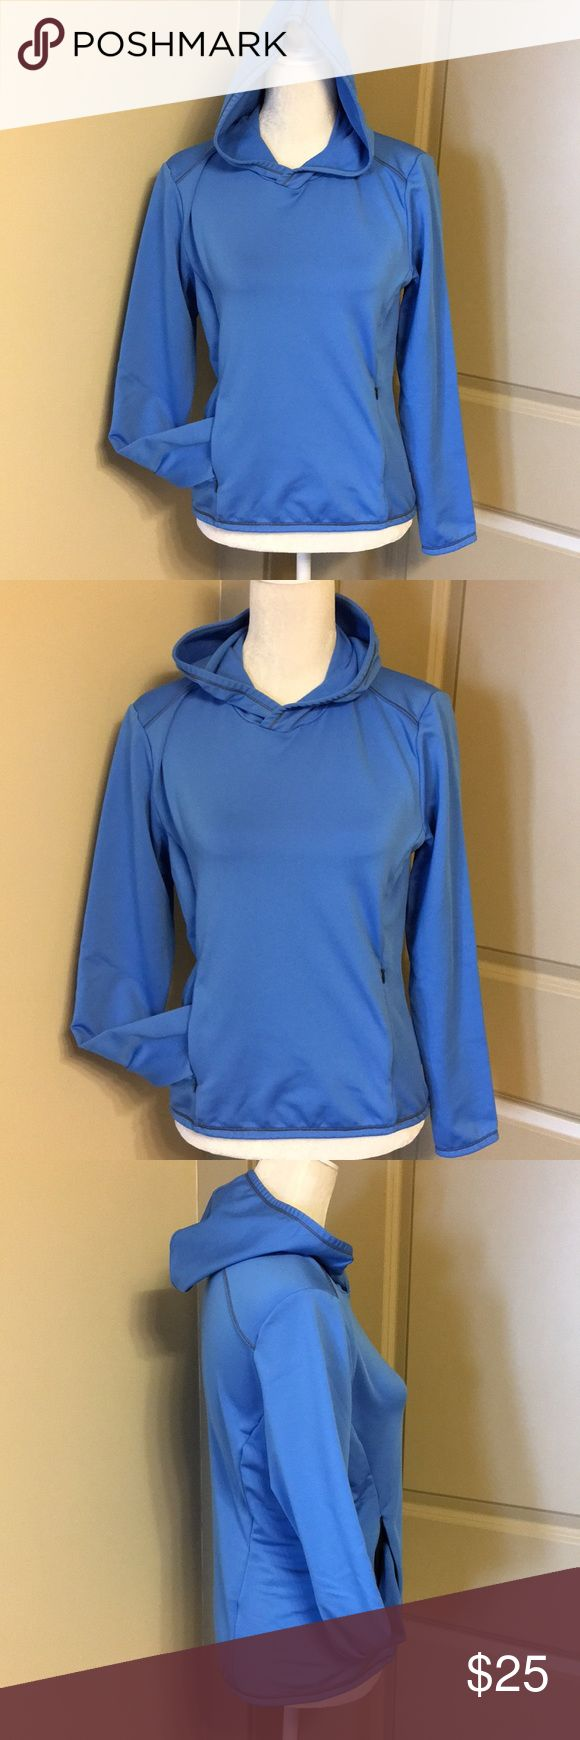 Lucy brand pullover This is a super comfortable and form flattering pullover from Lucy Brand. It's a pretty blue color.  It's hooded and has two front zipper pockets that make one big kangaroo pocket. It's slightly longer in the back than front. It's in excellent condition. Lucy Tops Sweatshirts & Hoodies